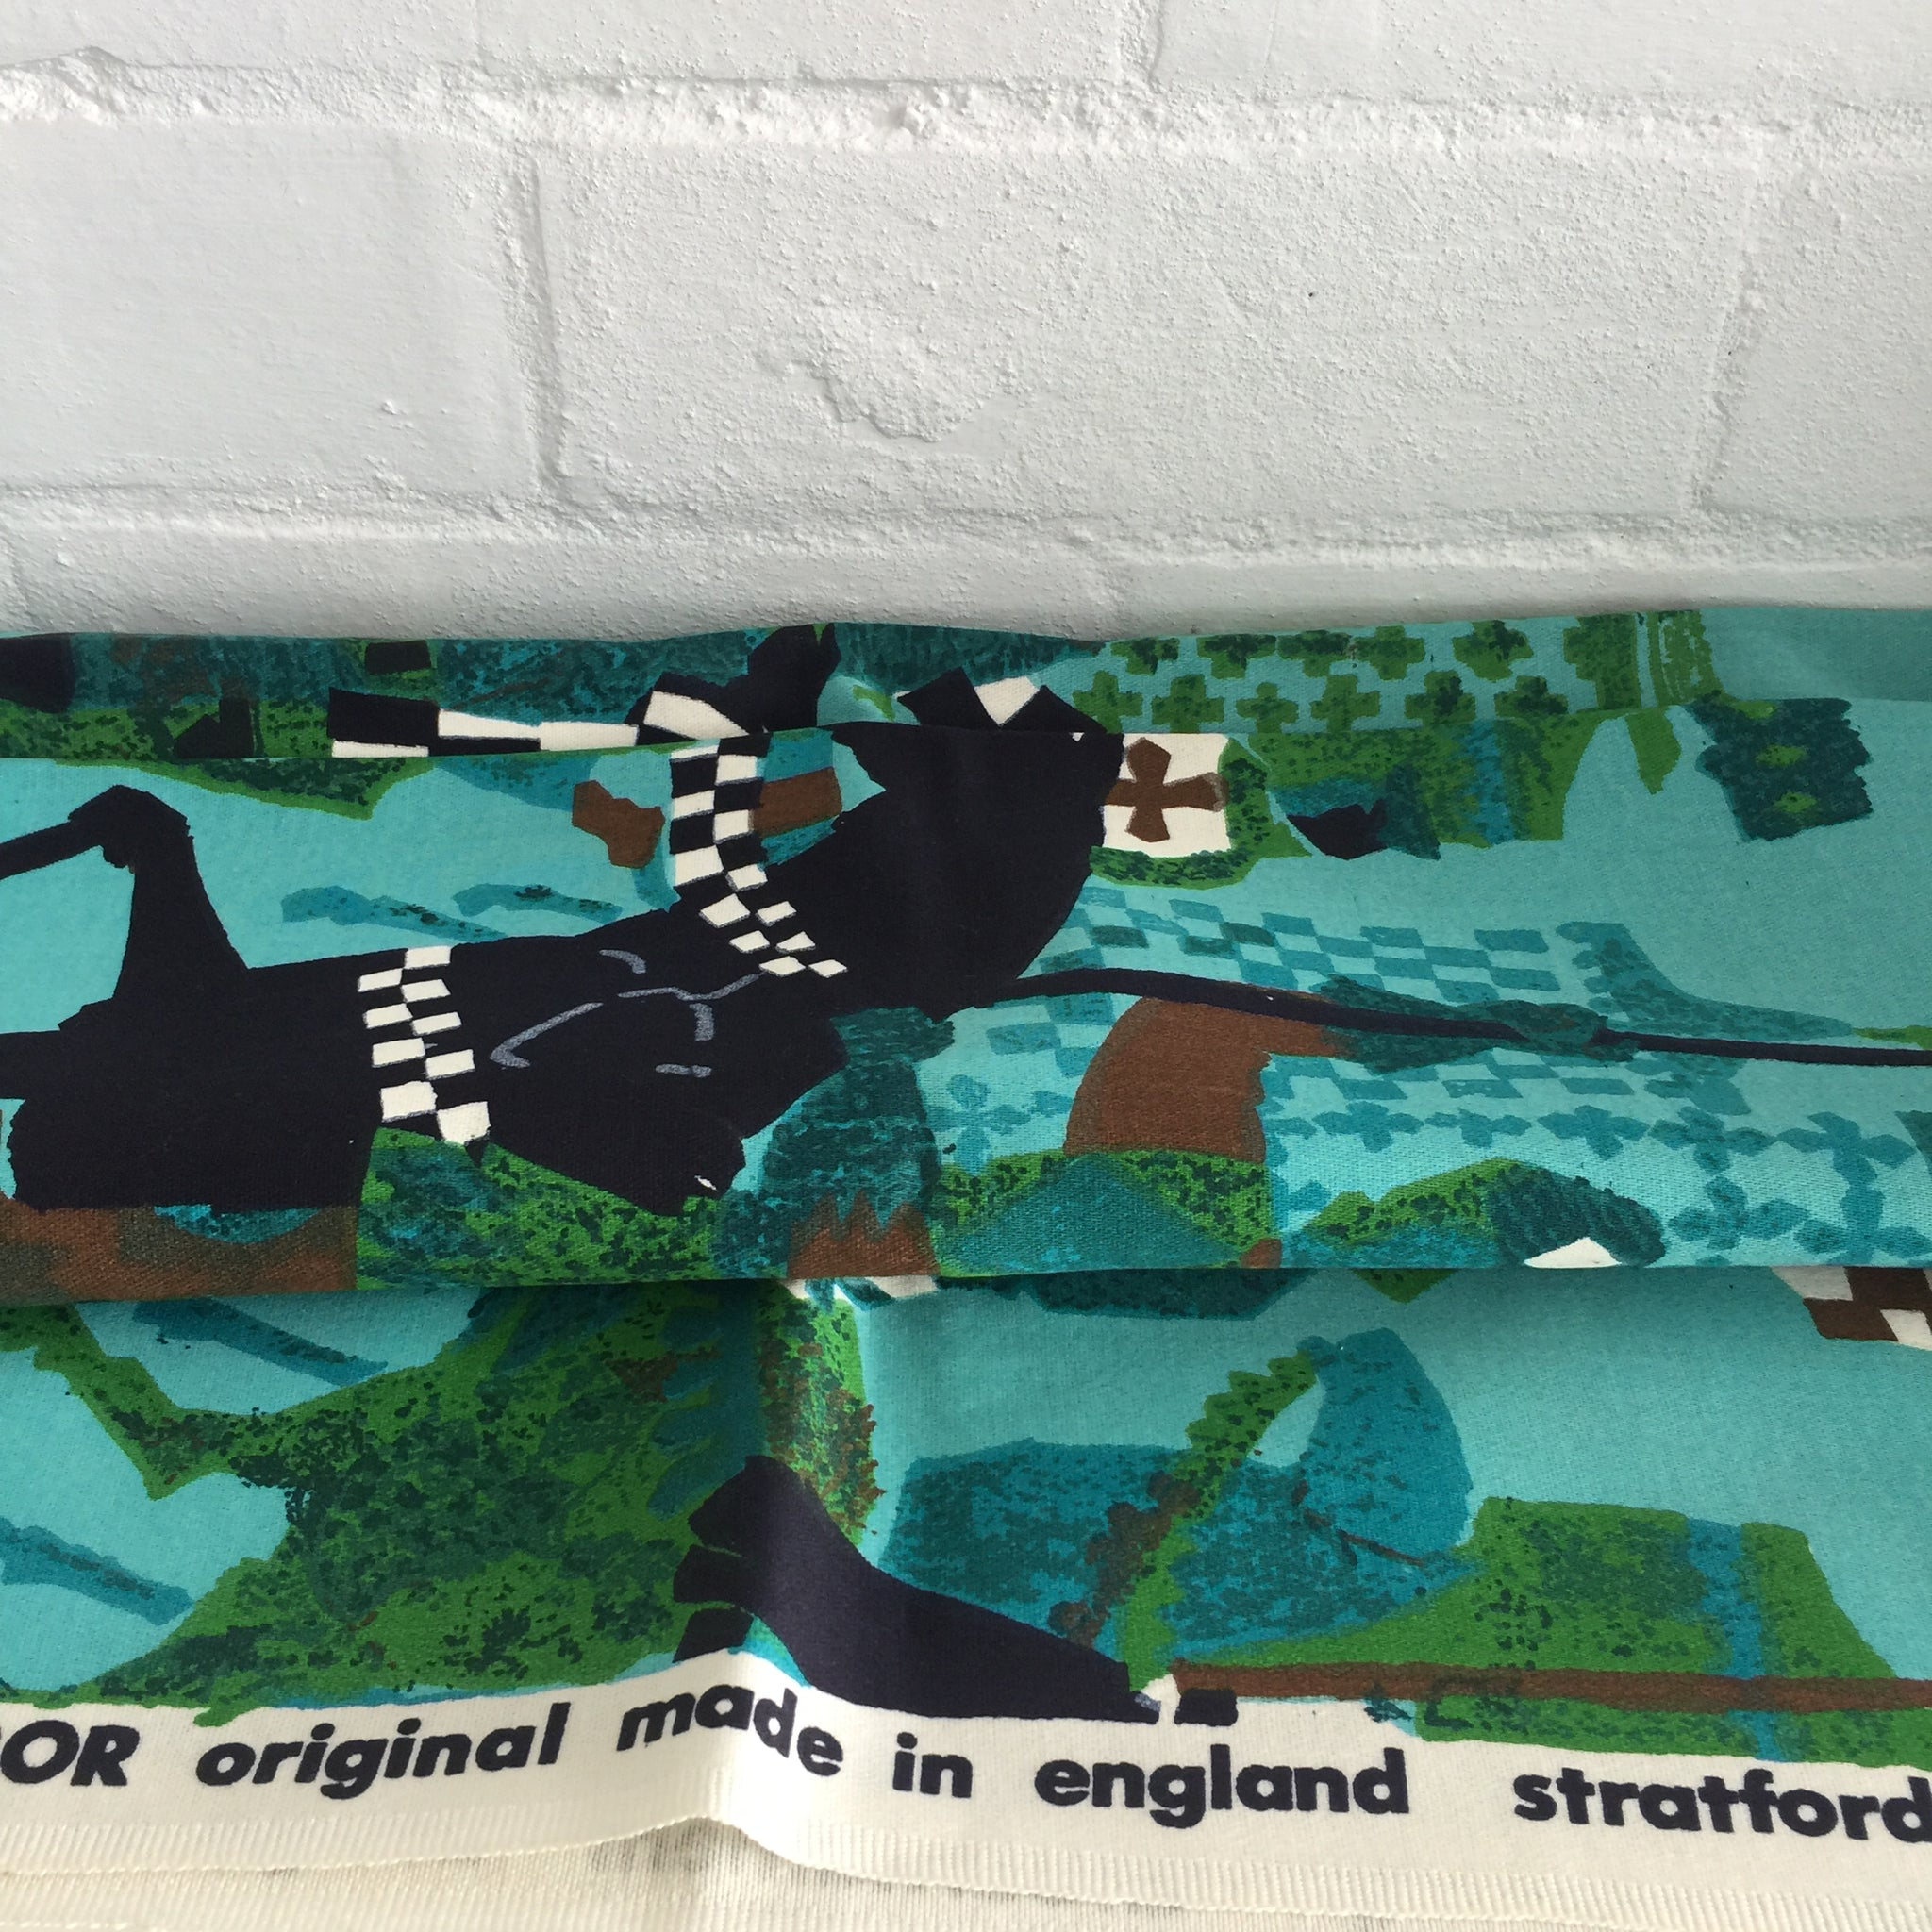 TIBOR Original Stratford on Avon Wall Hanging Fabric Made in ENGLAND